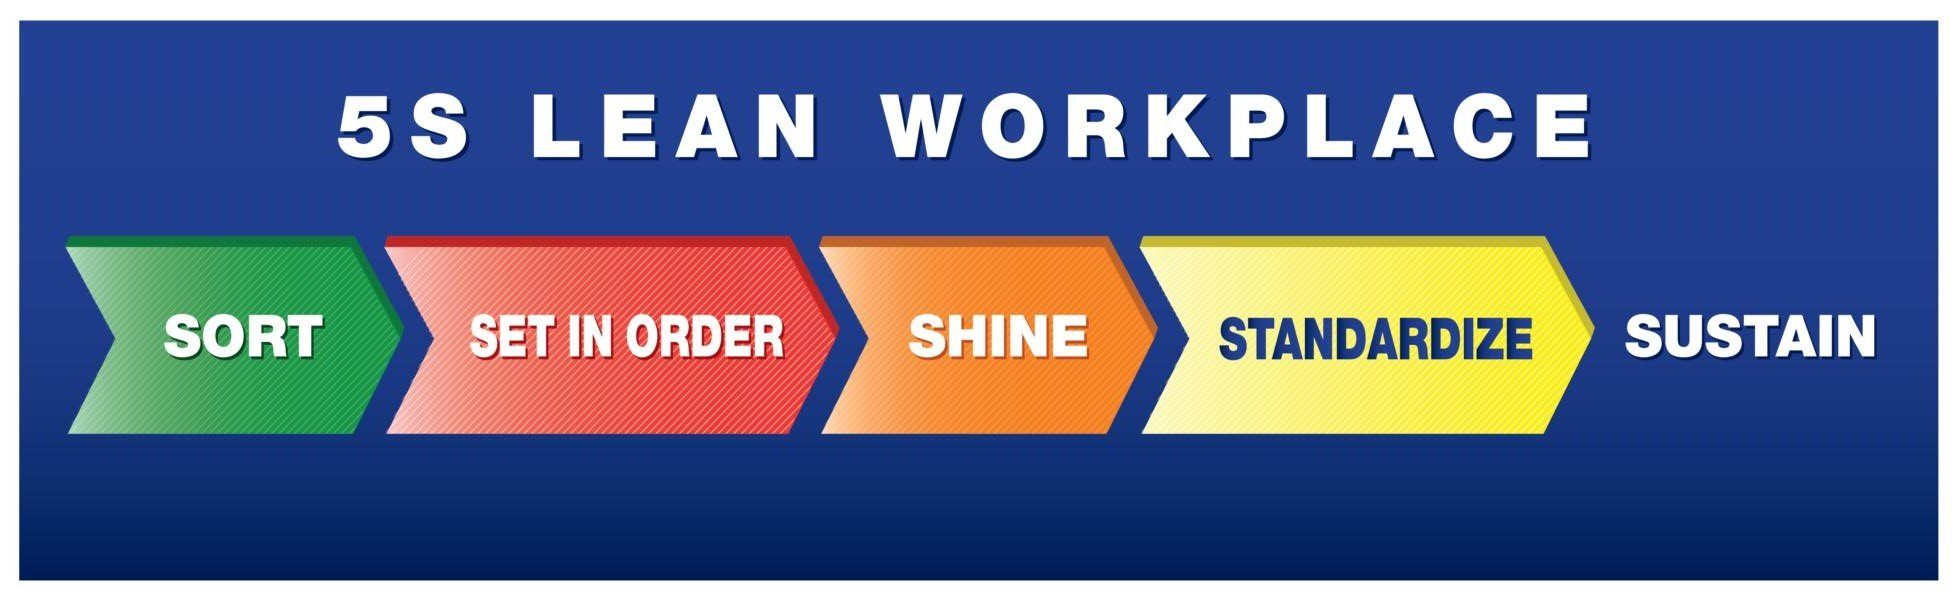 5S Lean Workplace: Sort Set In Order Shine Standardize Sustain - Banner Motivational Safety Banners